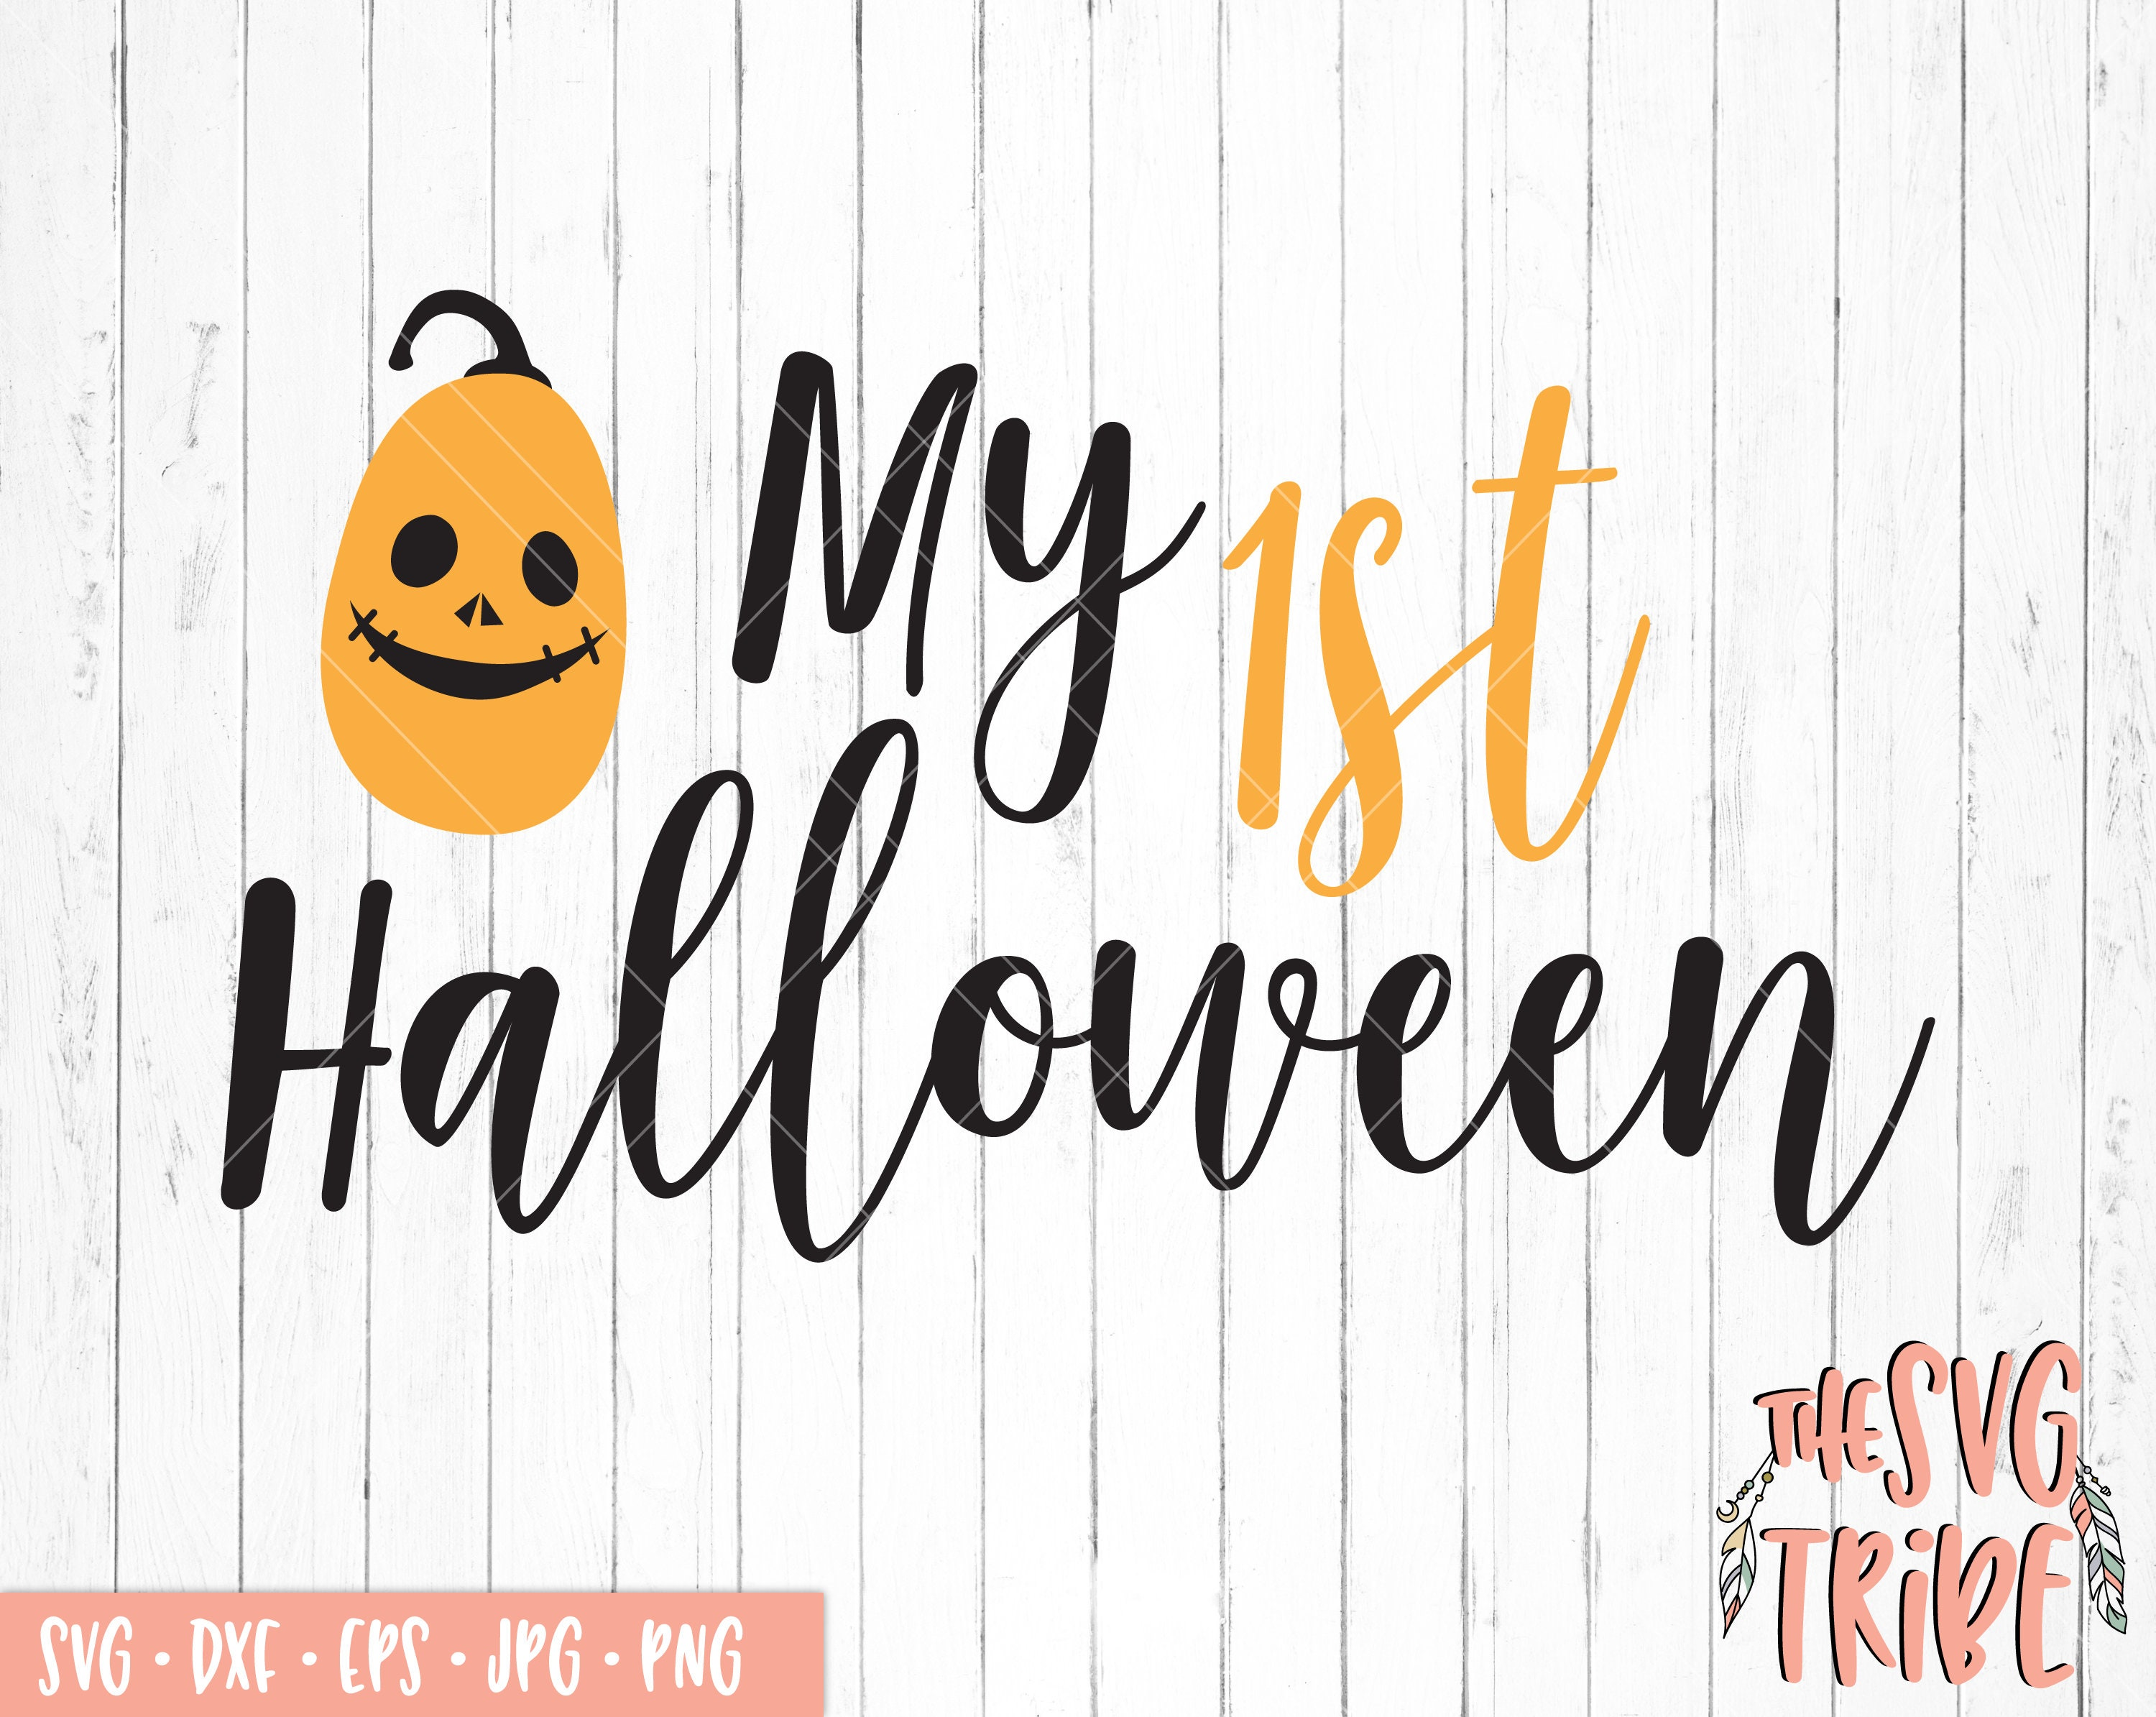 Cricut Cut Files Cameo Cut Files Onesie Svg Baby Svg Silhouette Cut Files Halloween Cut File First Halloween Baby Svg Eps Dxf Eps Visual Arts Craft Supplies Tools